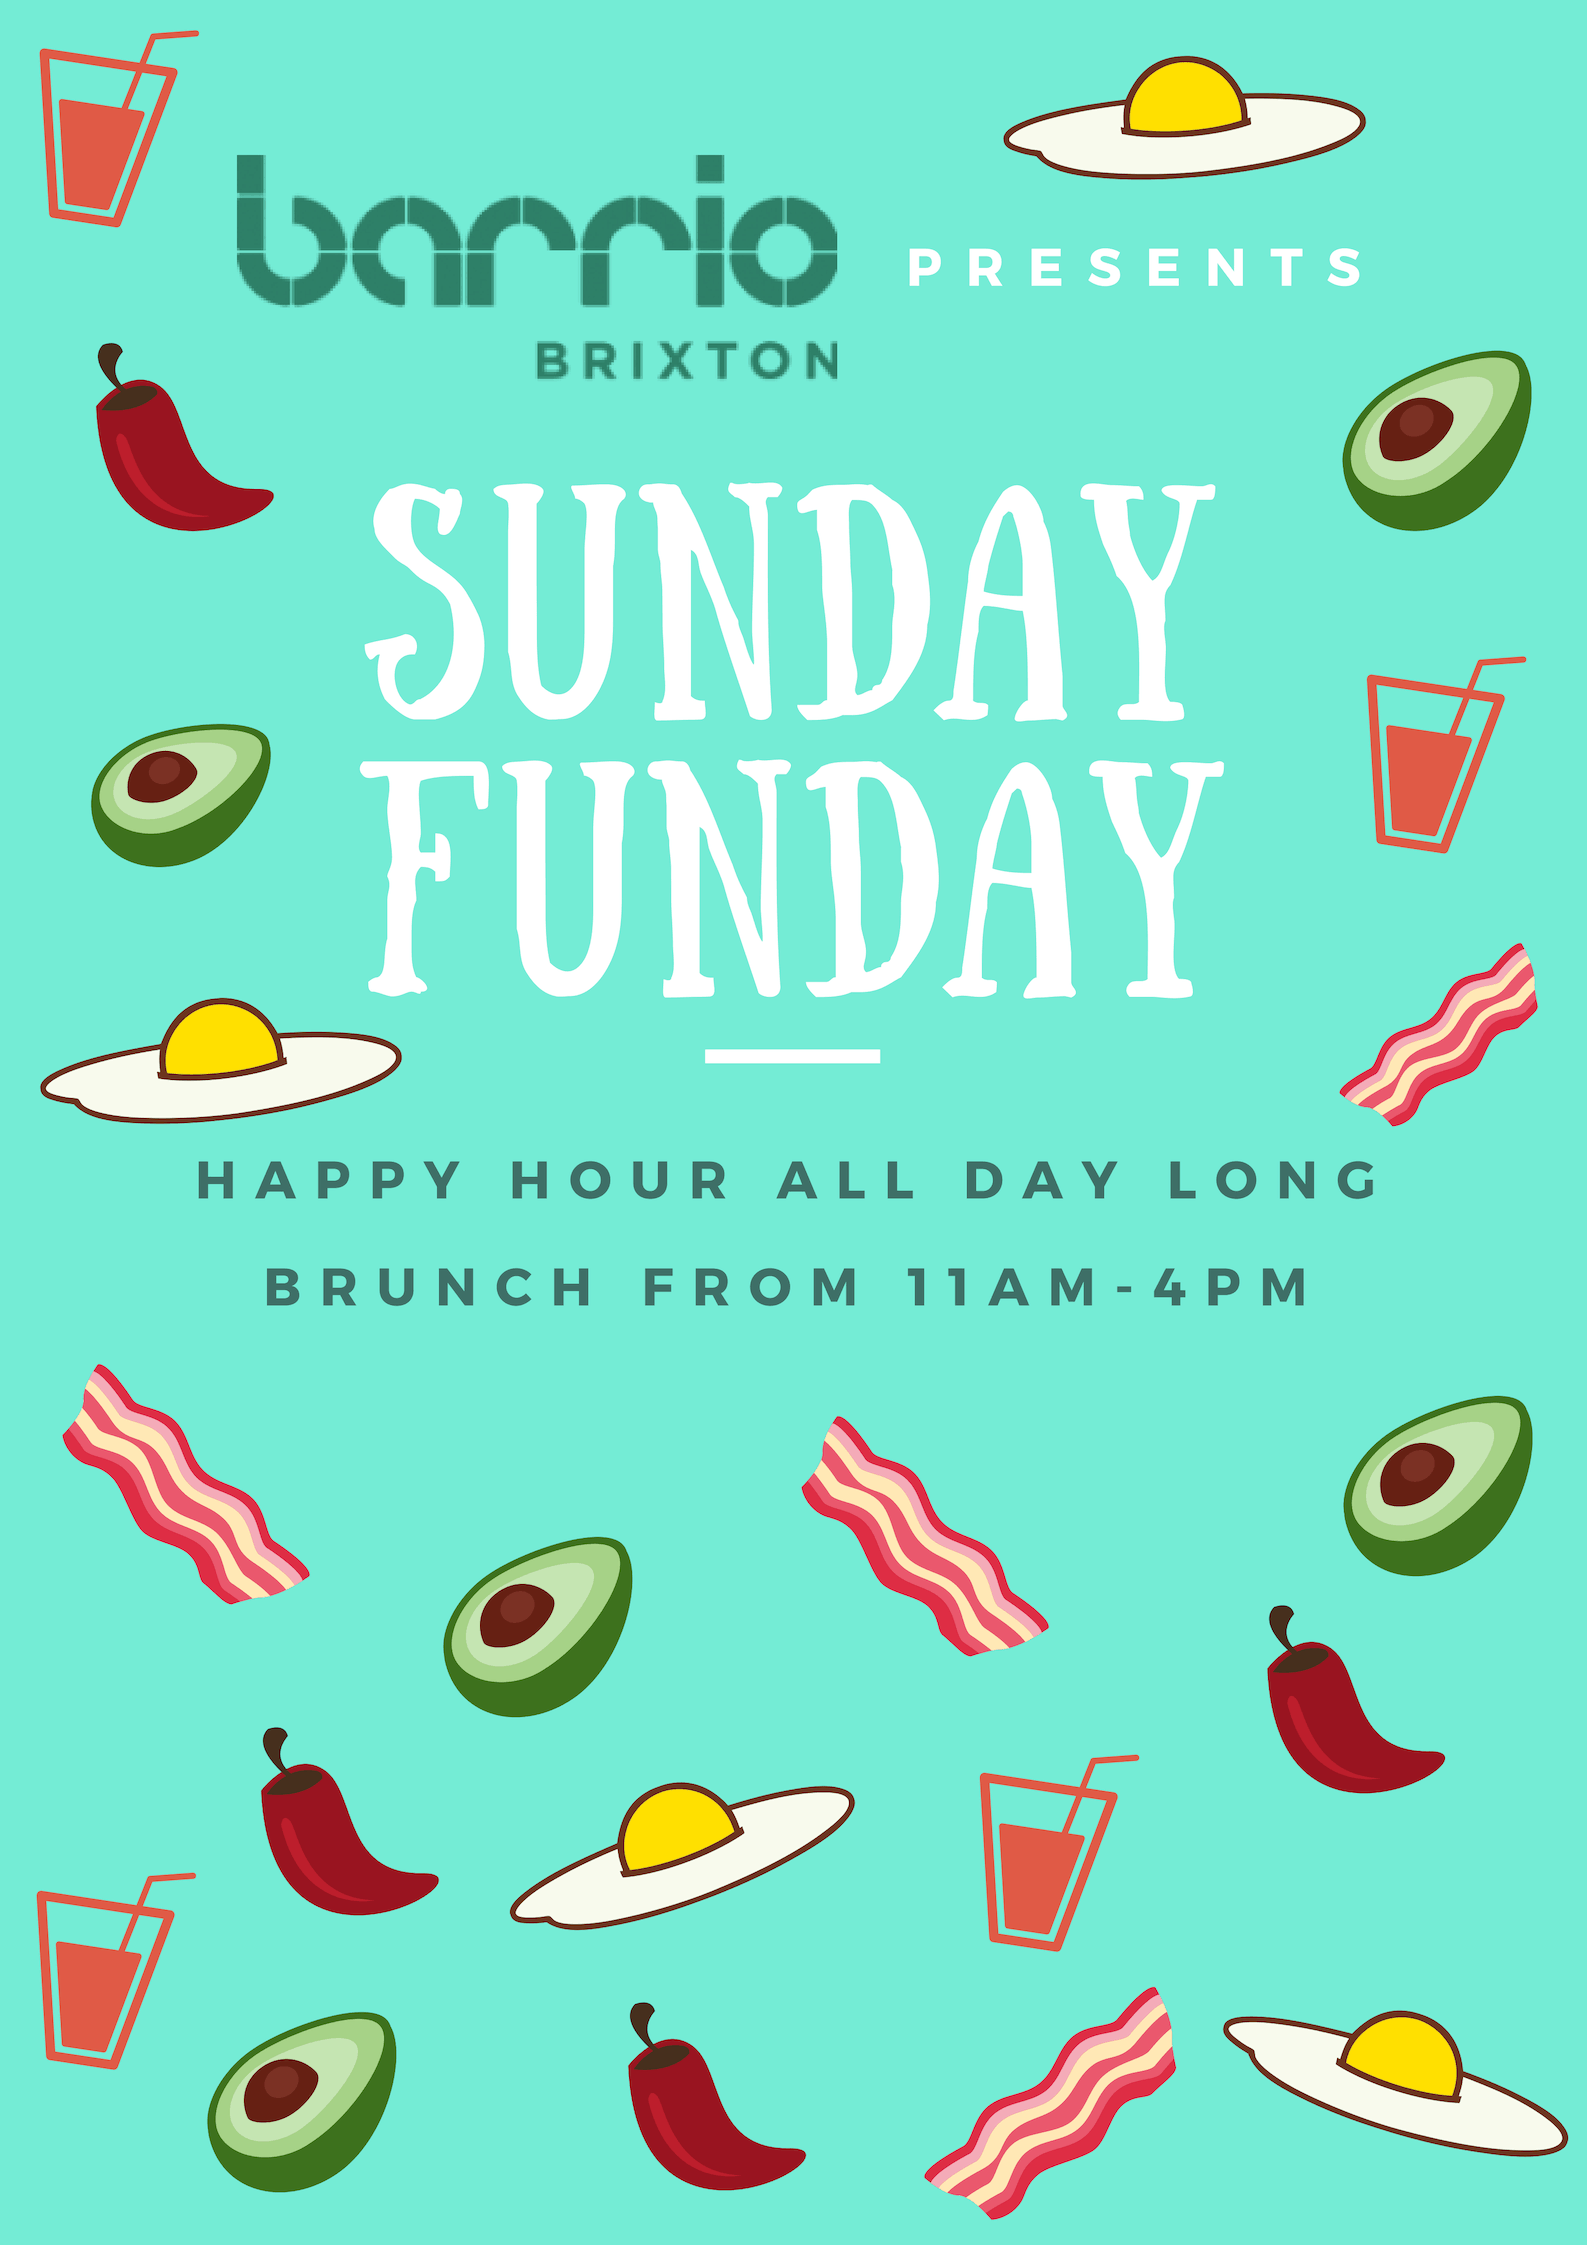 Bottomless Brunch in South London, Brixton